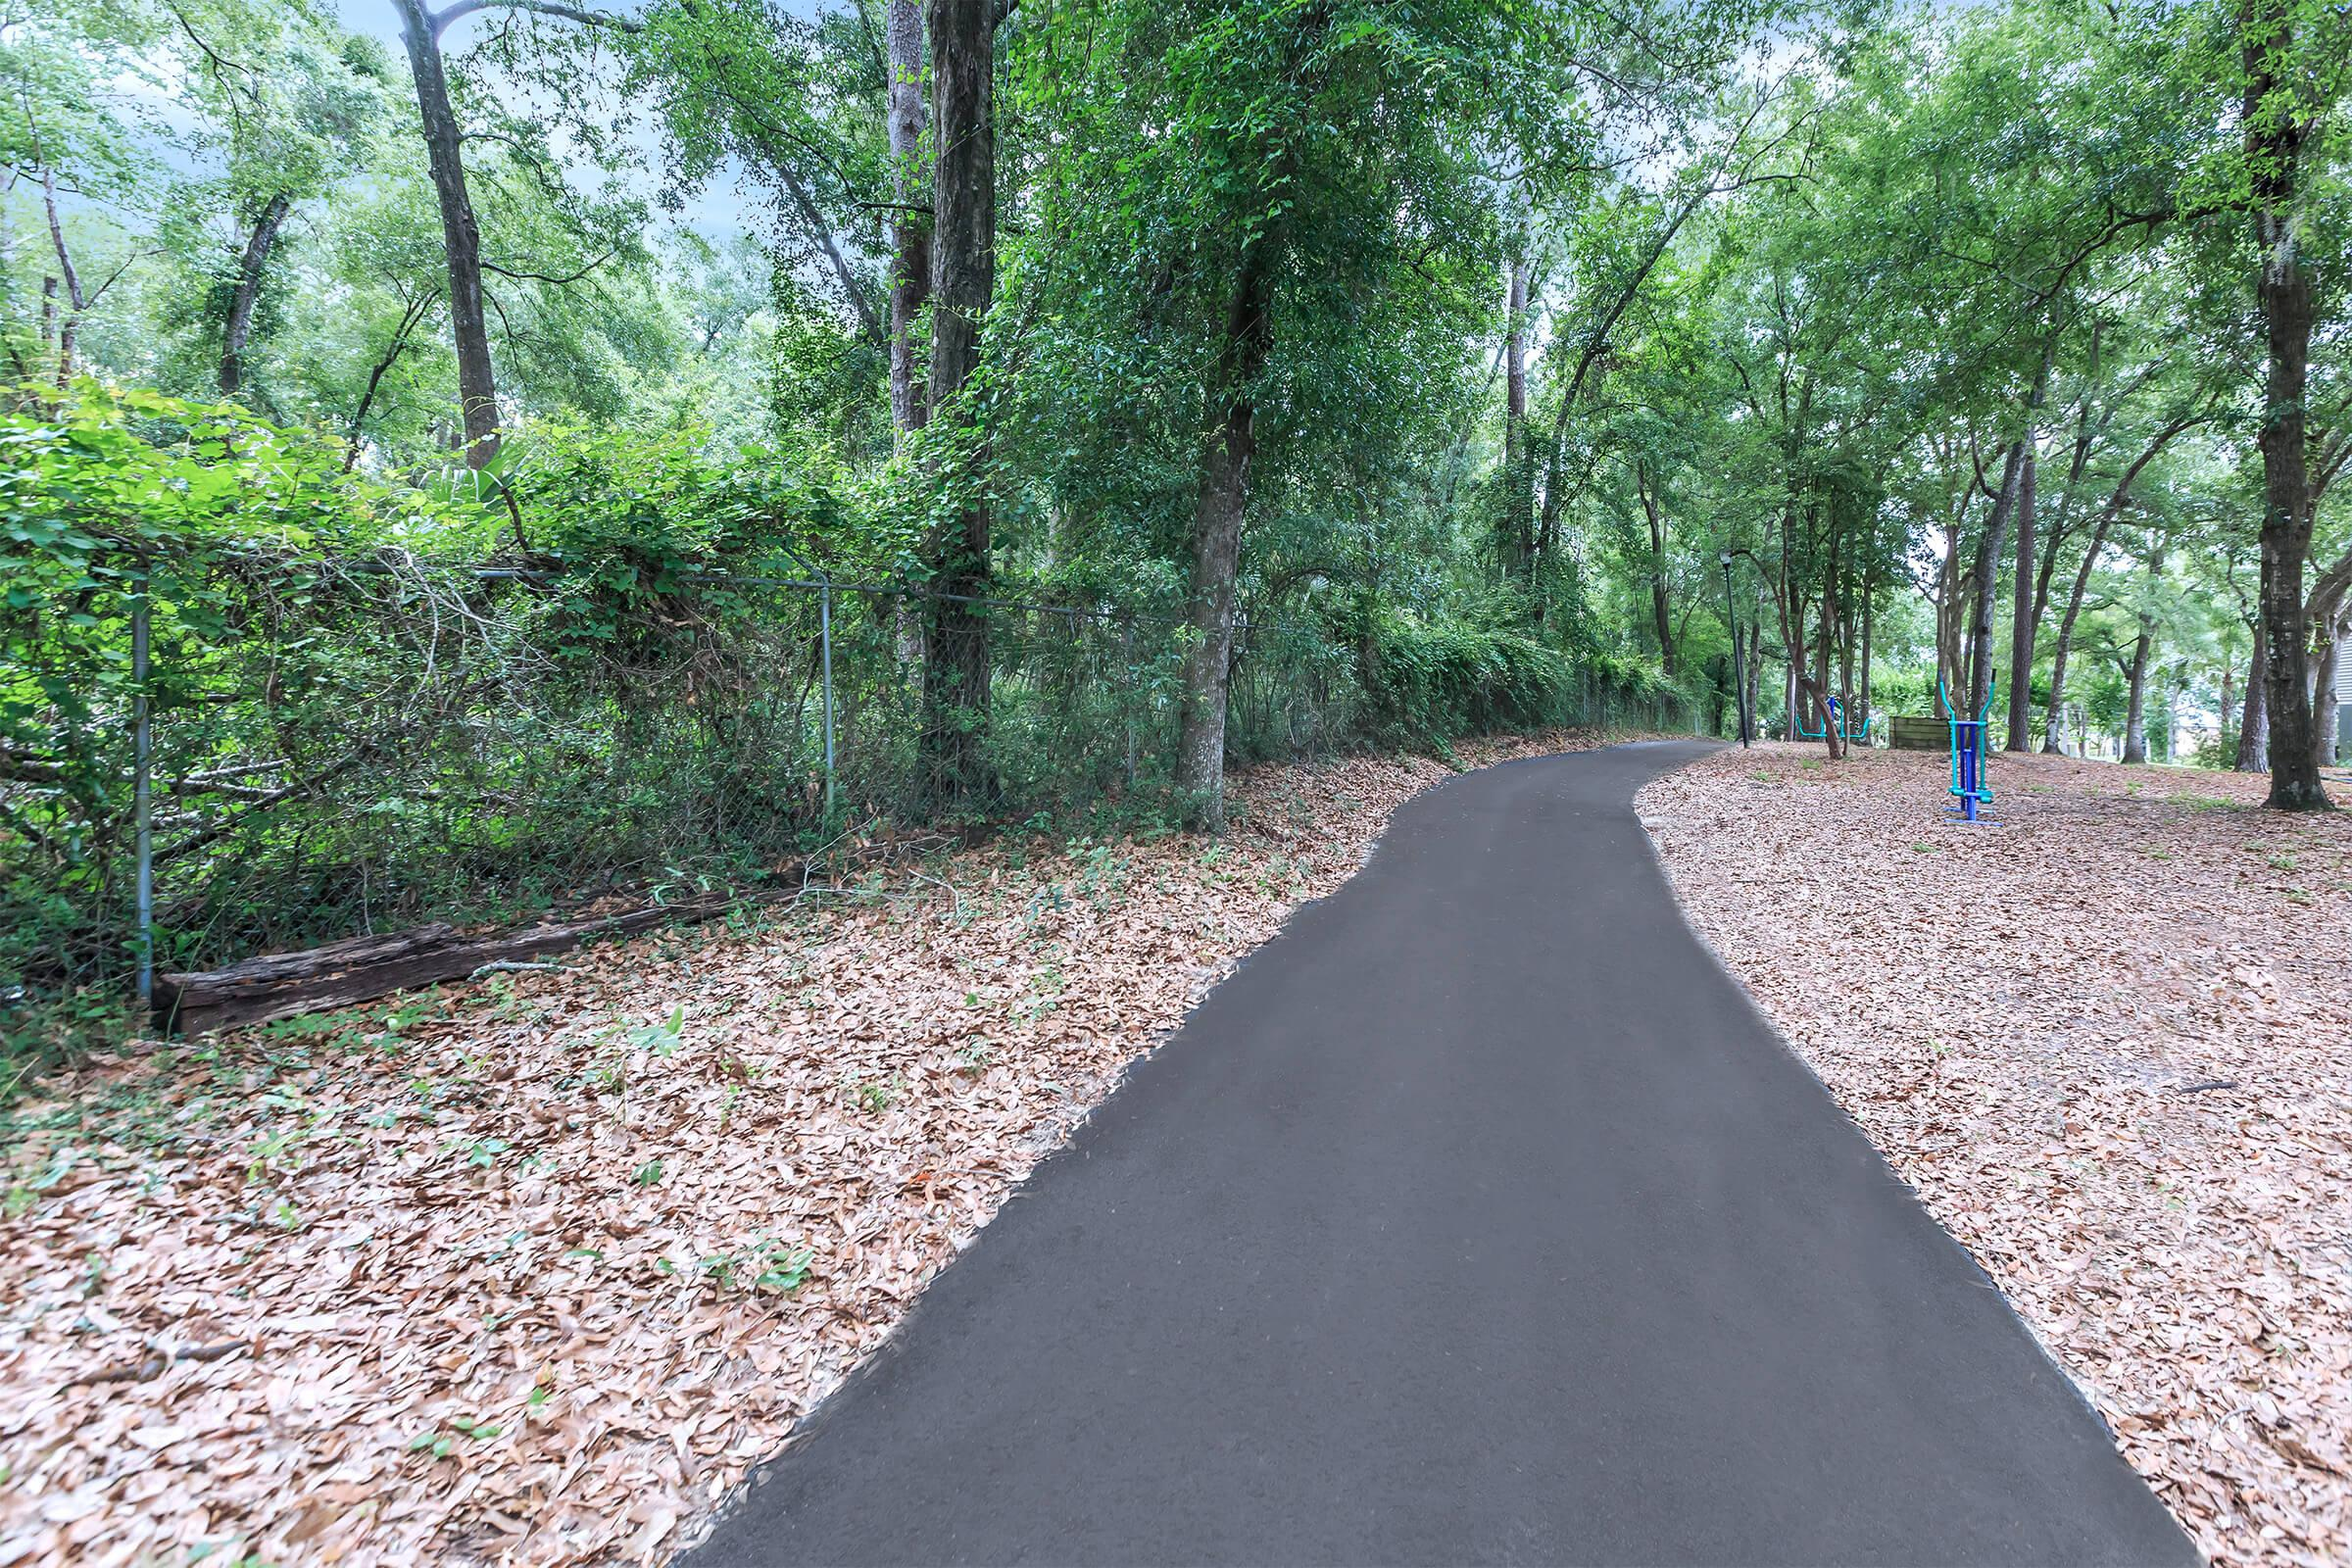 a dirt path next to a tree